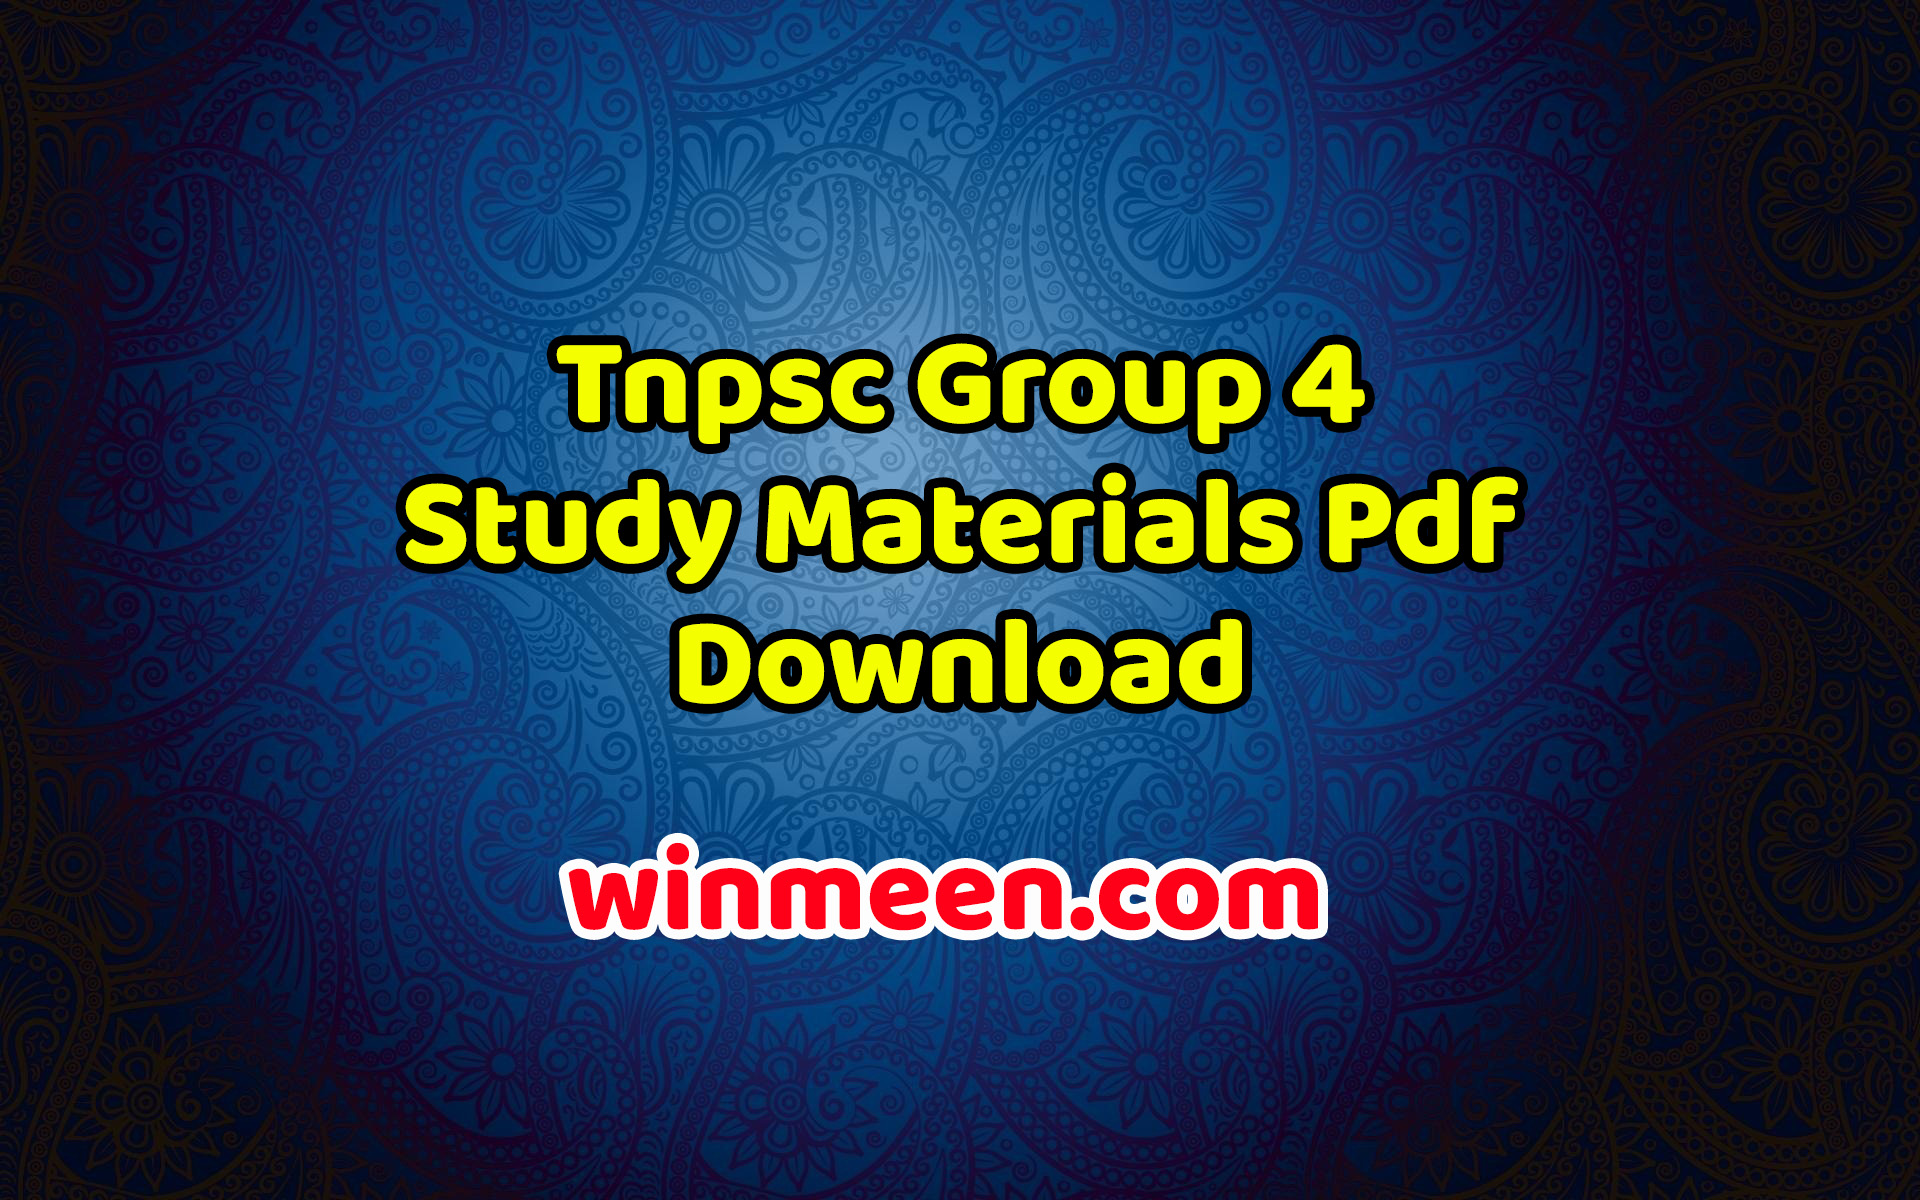 Tnpsc Group 4 Study Materials Pdf Download - WINMEEN